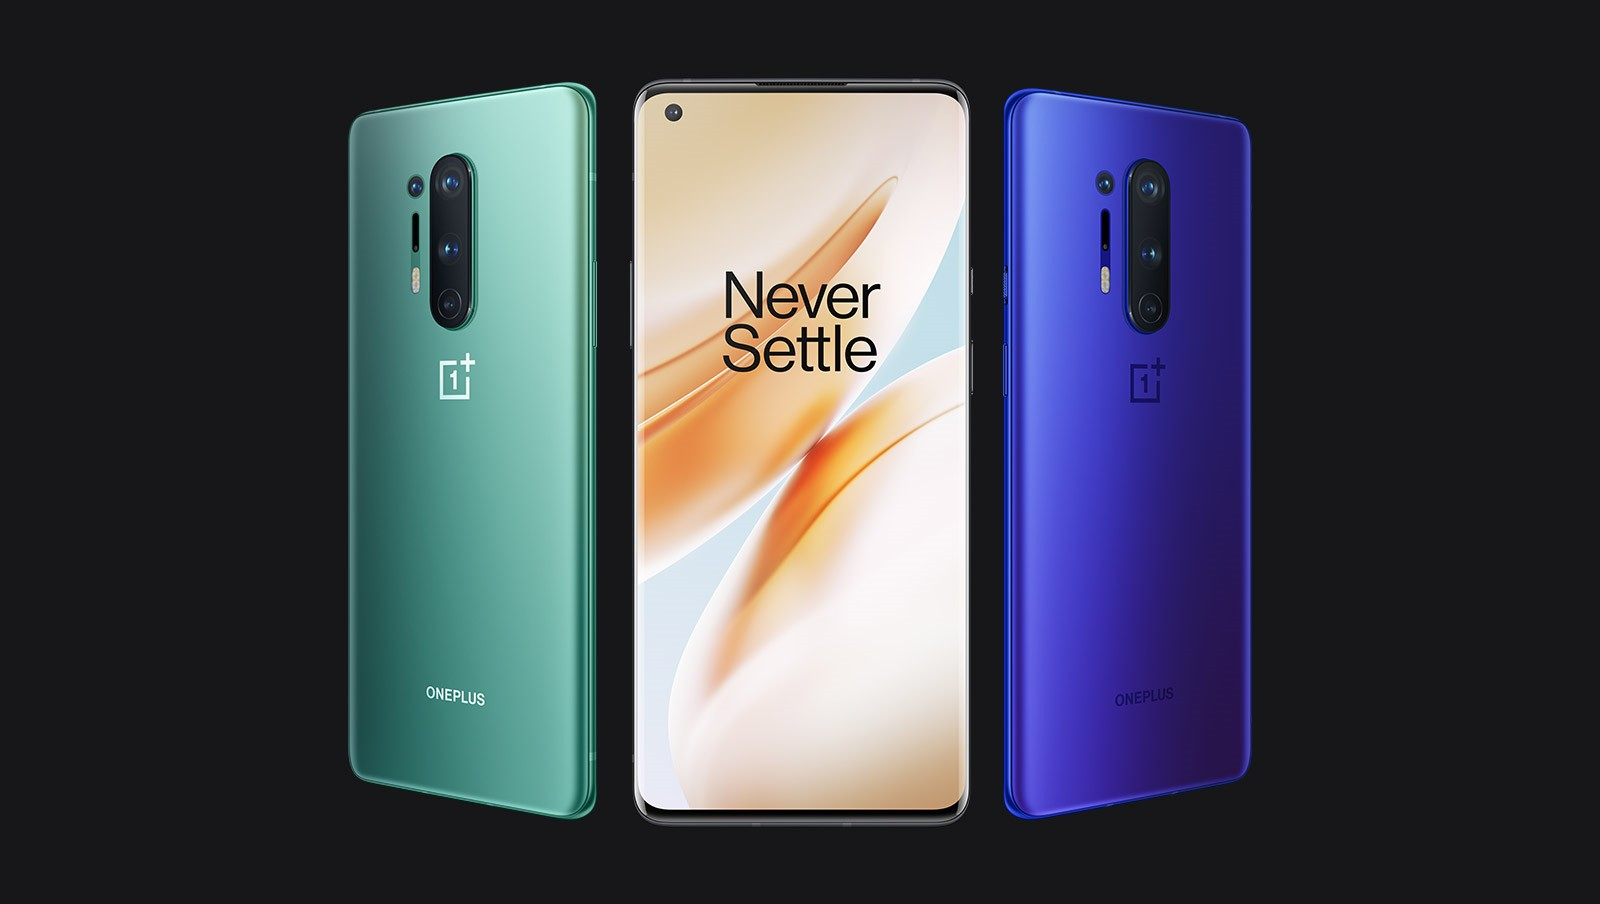 OnePlus 8 и 8 Pro обновились до OxygenOS 11 на базе Android 11 Developer Preview